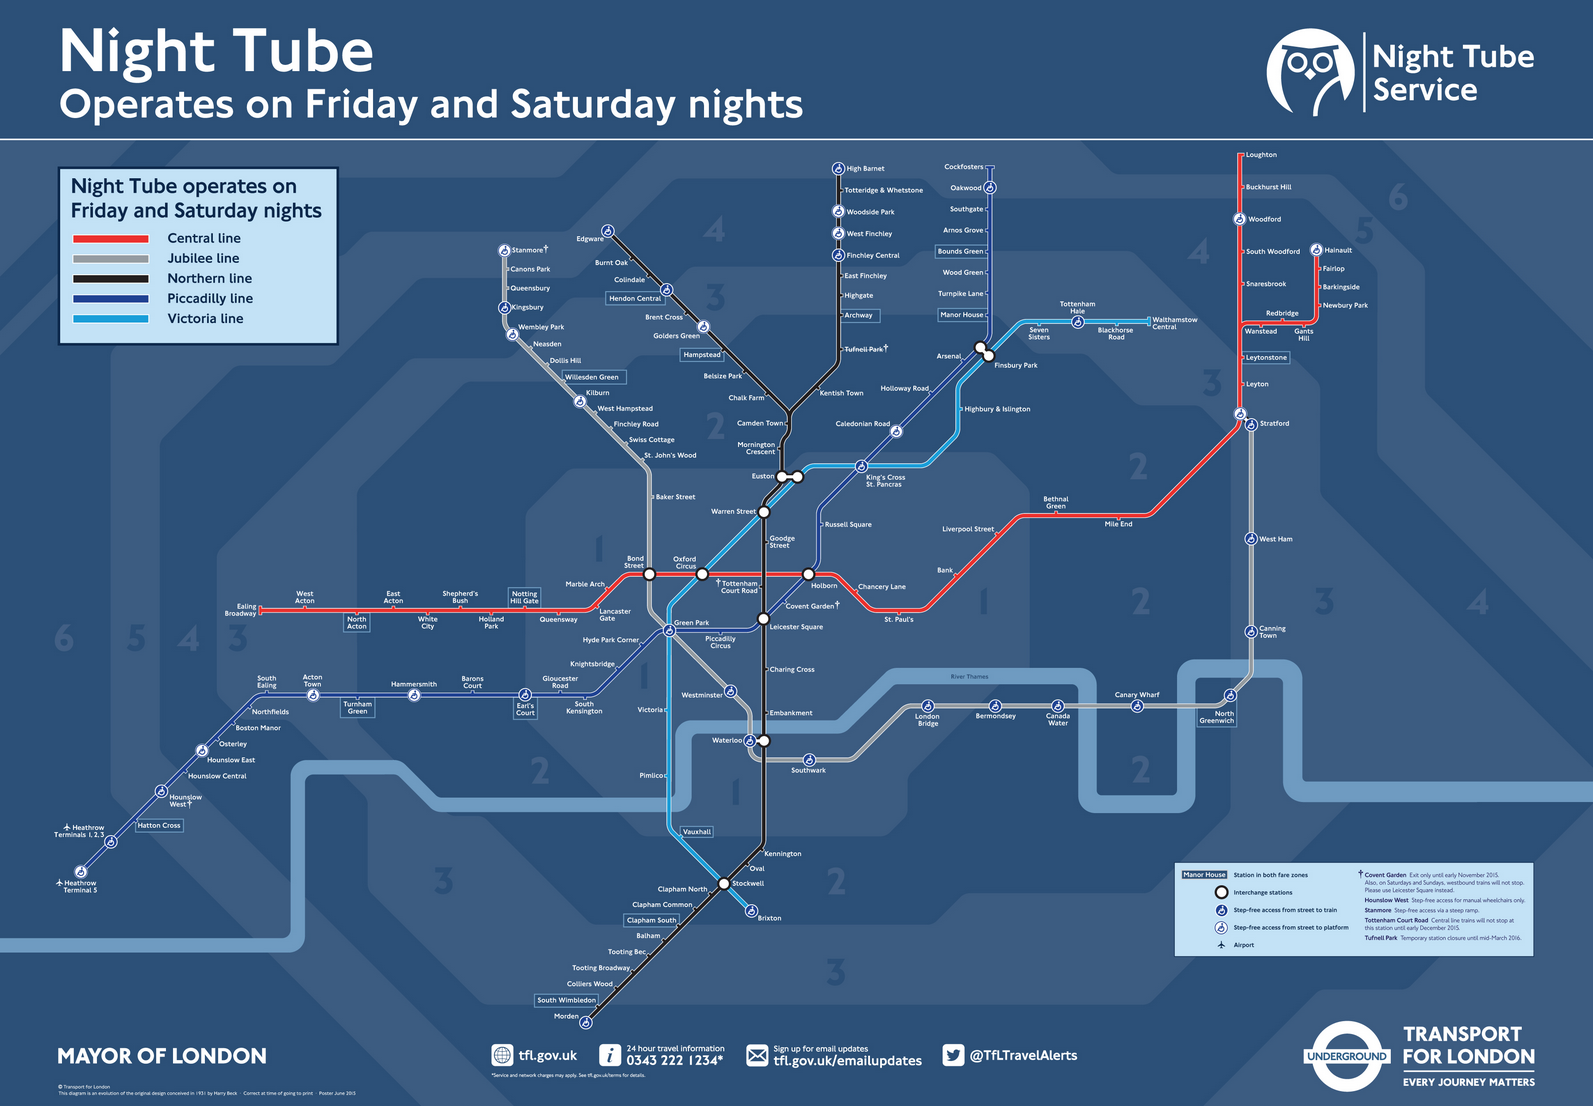 London Underground Reveal New Map For Night Tube Screen Shot 2015 06 22 at 14.09.04